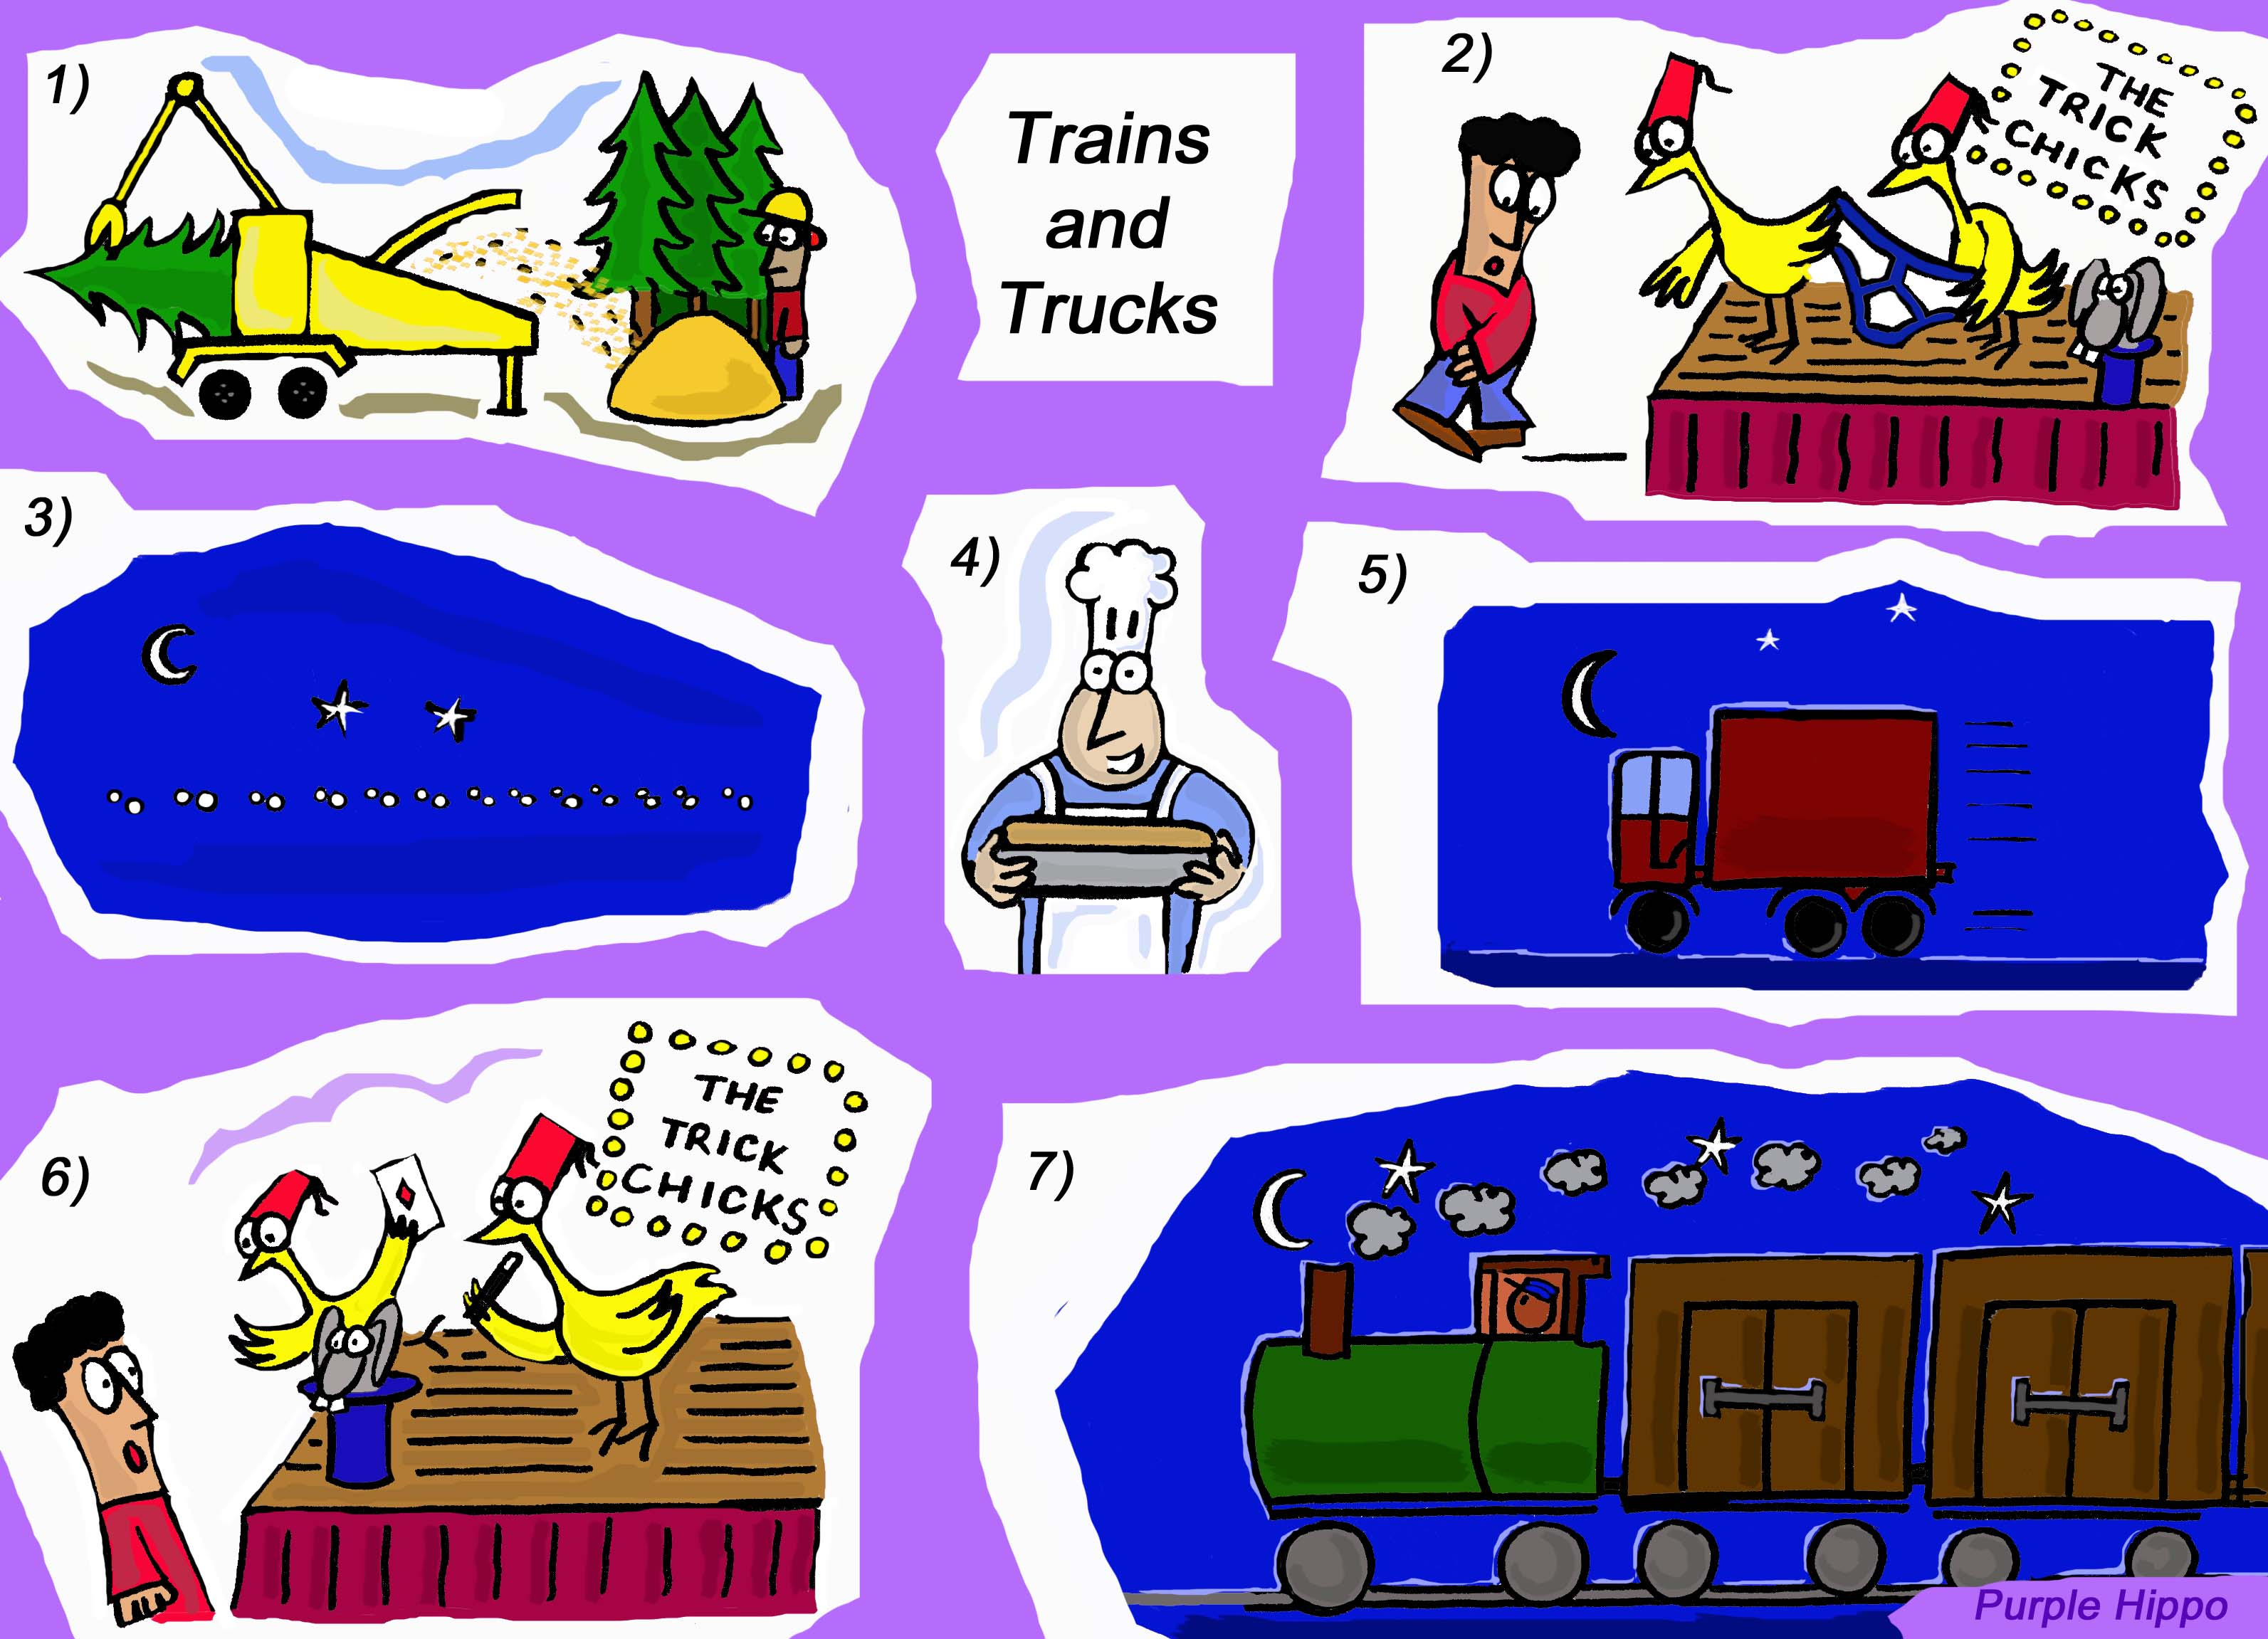 Trains and Trucks, Trains and Chains 'Tr' and 'Ch' activities